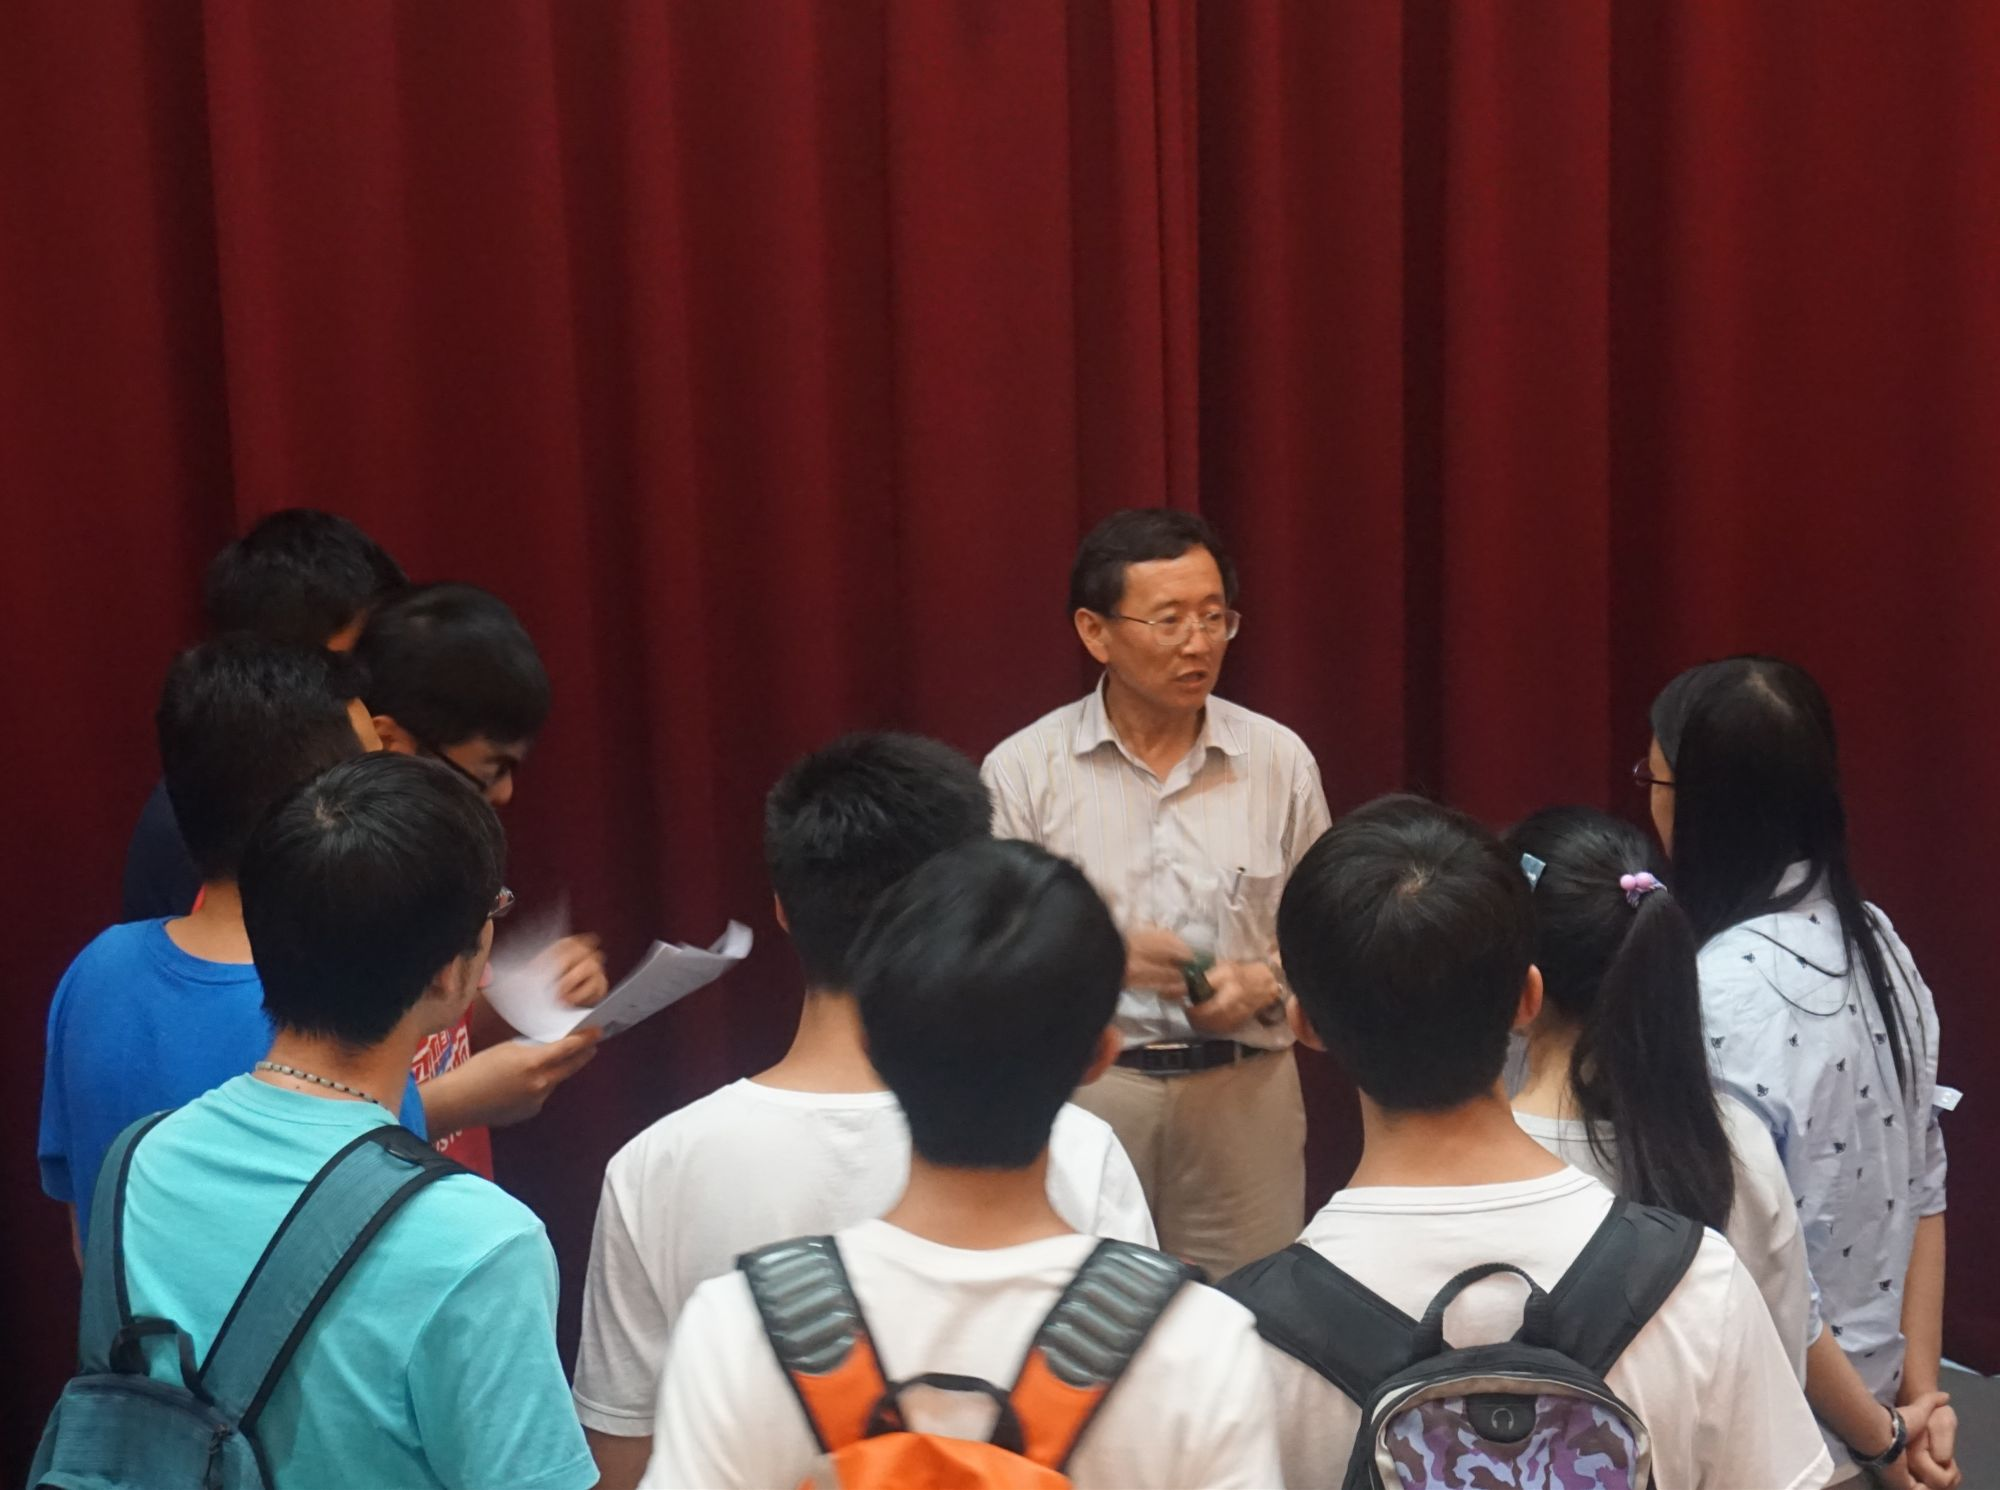 Department of Mechanical and Energy Engineering held a Mechanical Engineering Major Introduction Meeting